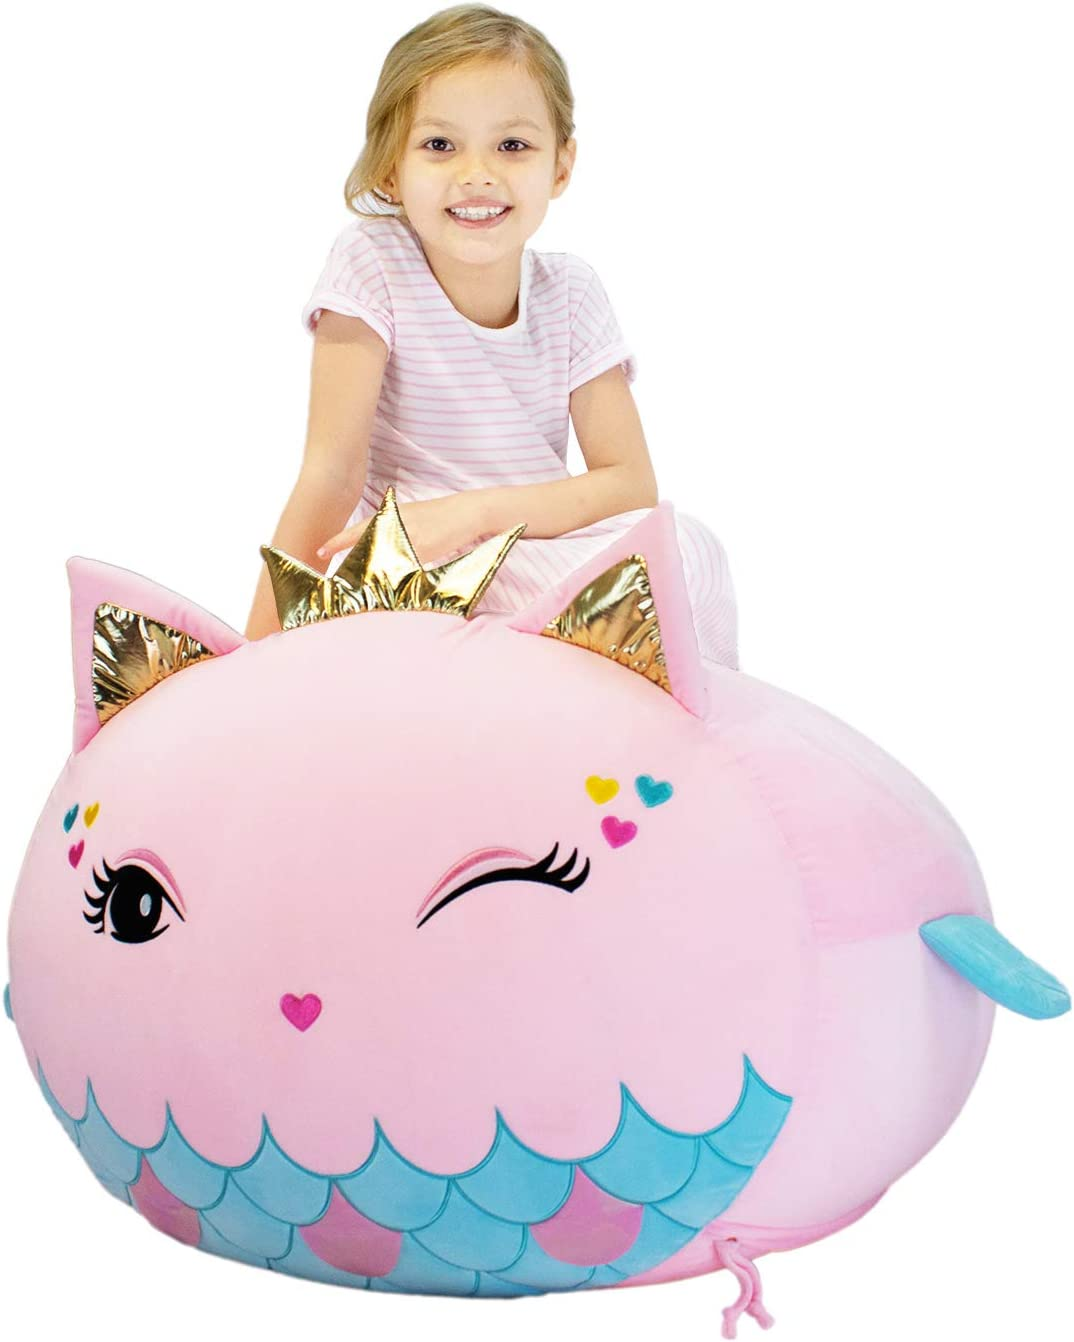 Mermaid Stuffed Animal Toy Storage Kids Bean Bag Chair Cover Large Size 23x23 Inch Velvet Extra Soft Stuffed Organization Replace Mesh Toy Hammock for Kids Blankets Towels Clothes Home Supplies Pink